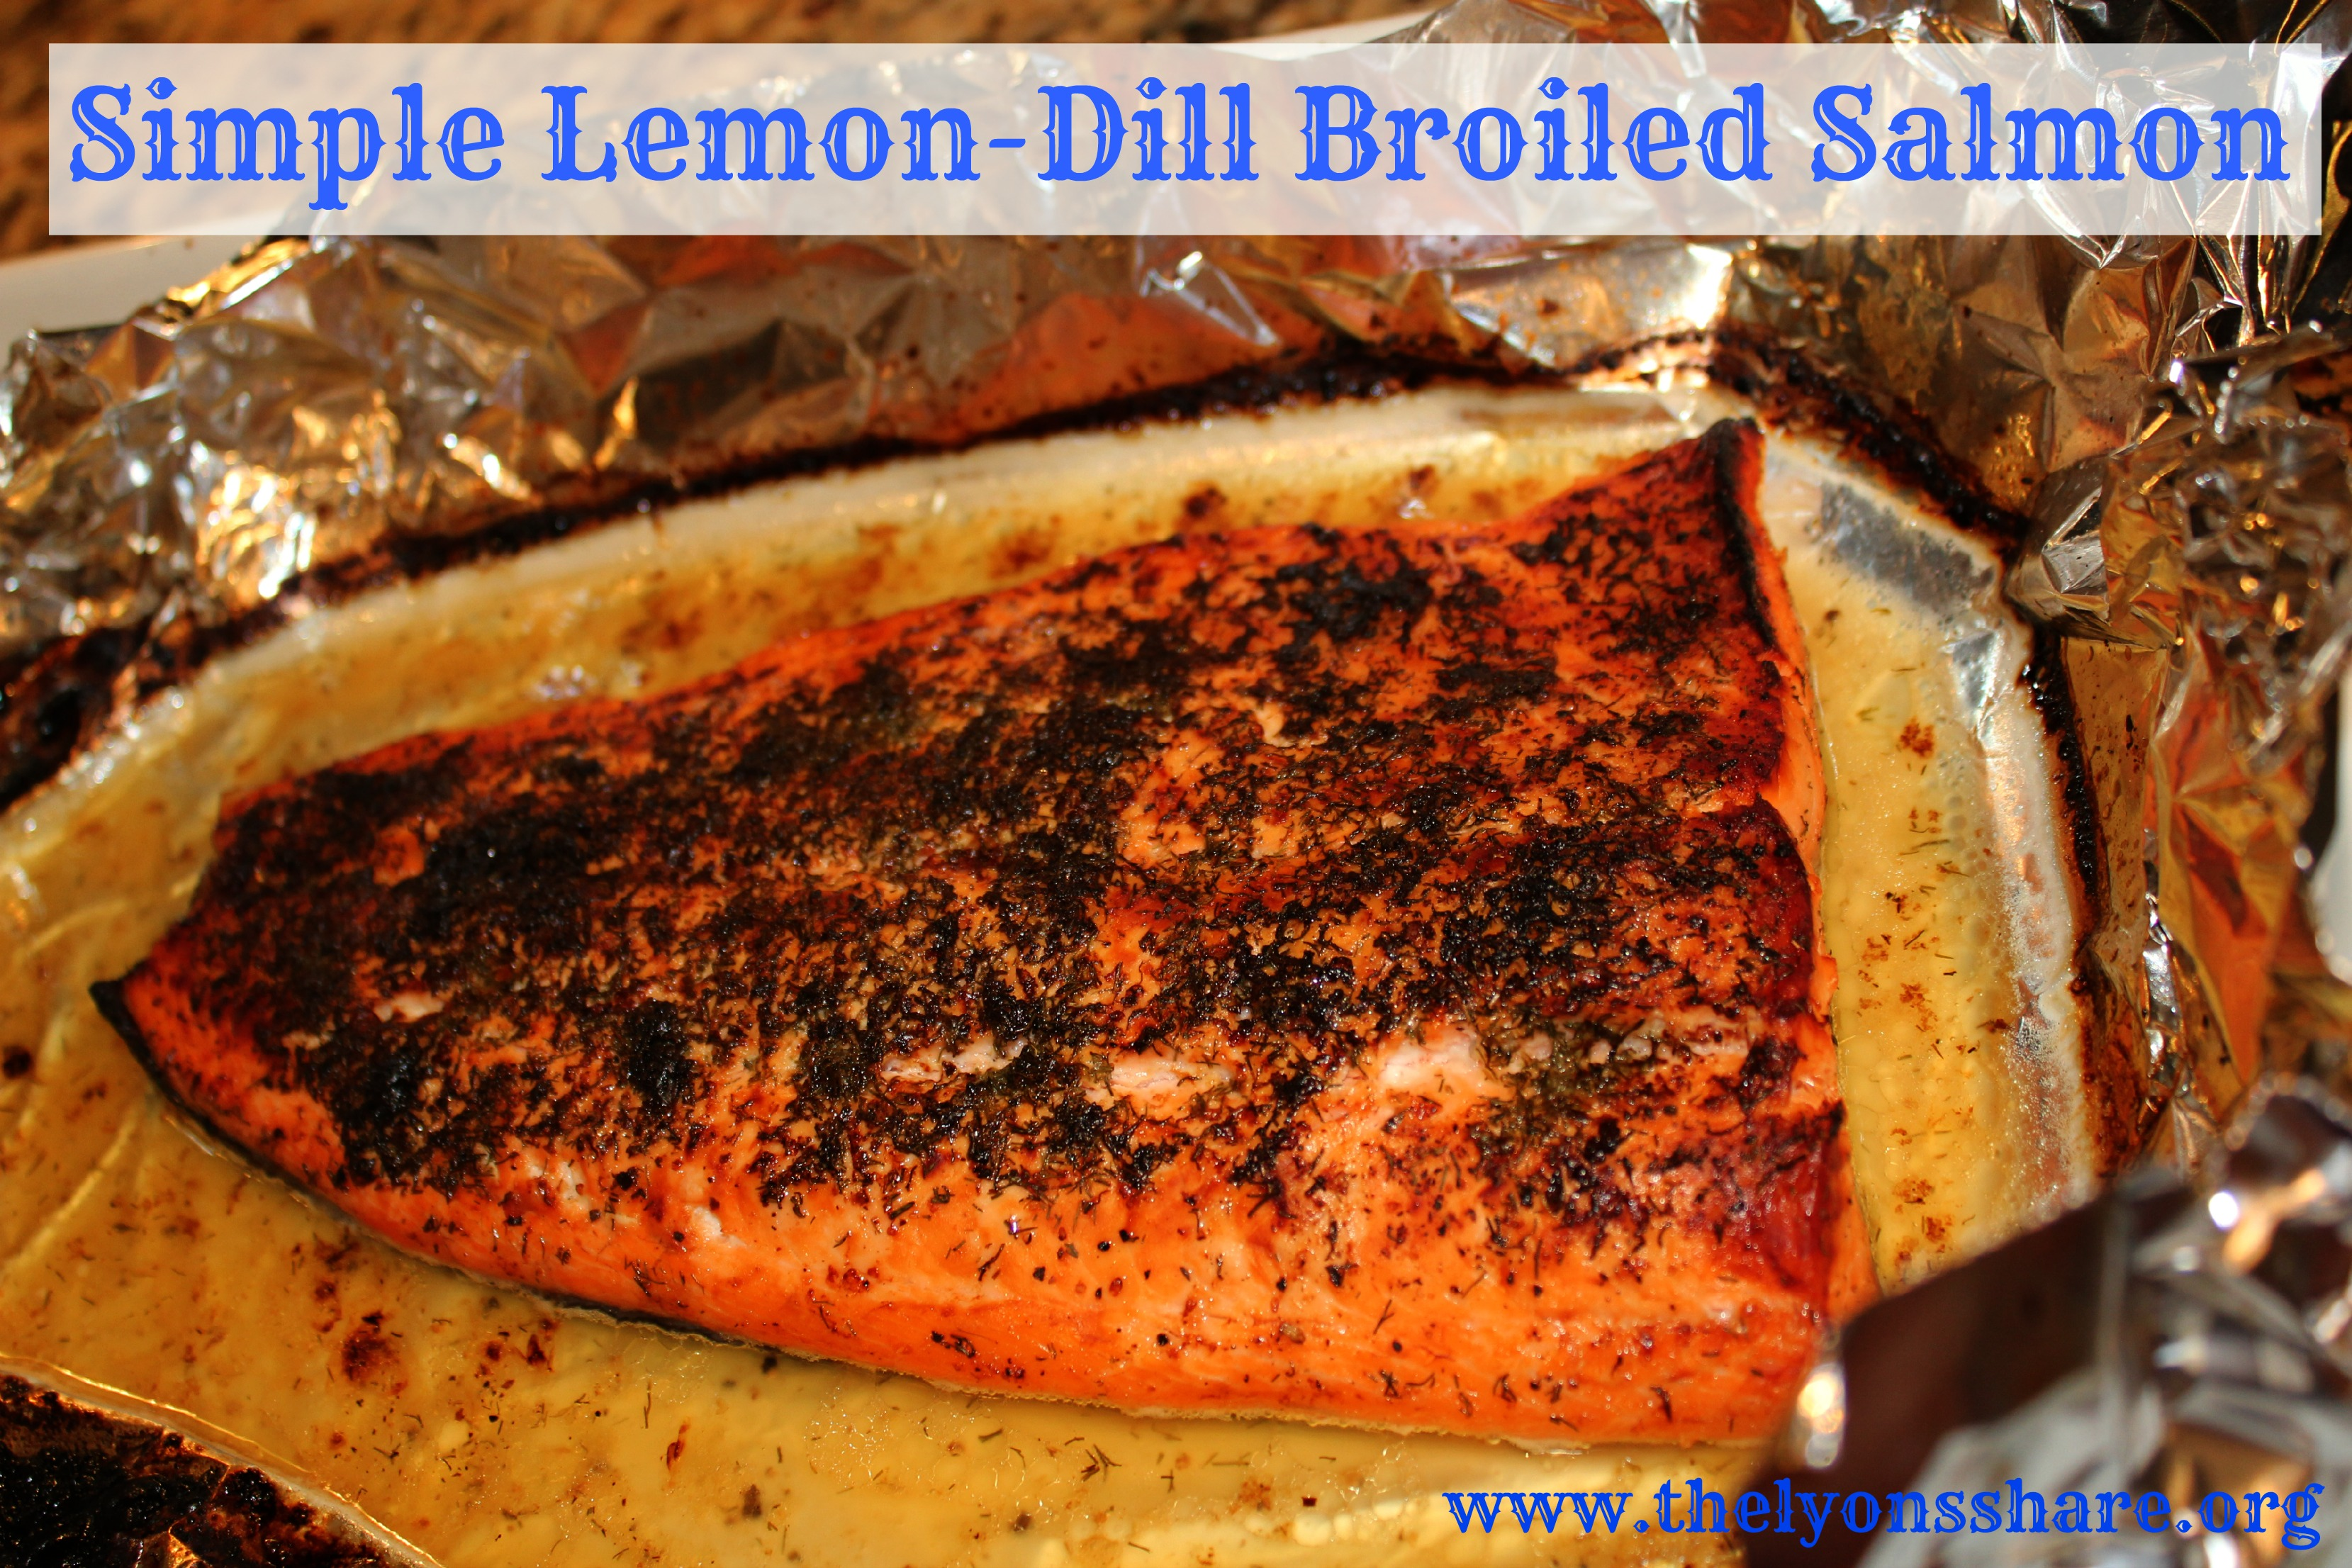 The lemony dill flavor really makes this salmon pop! It's easy to ...